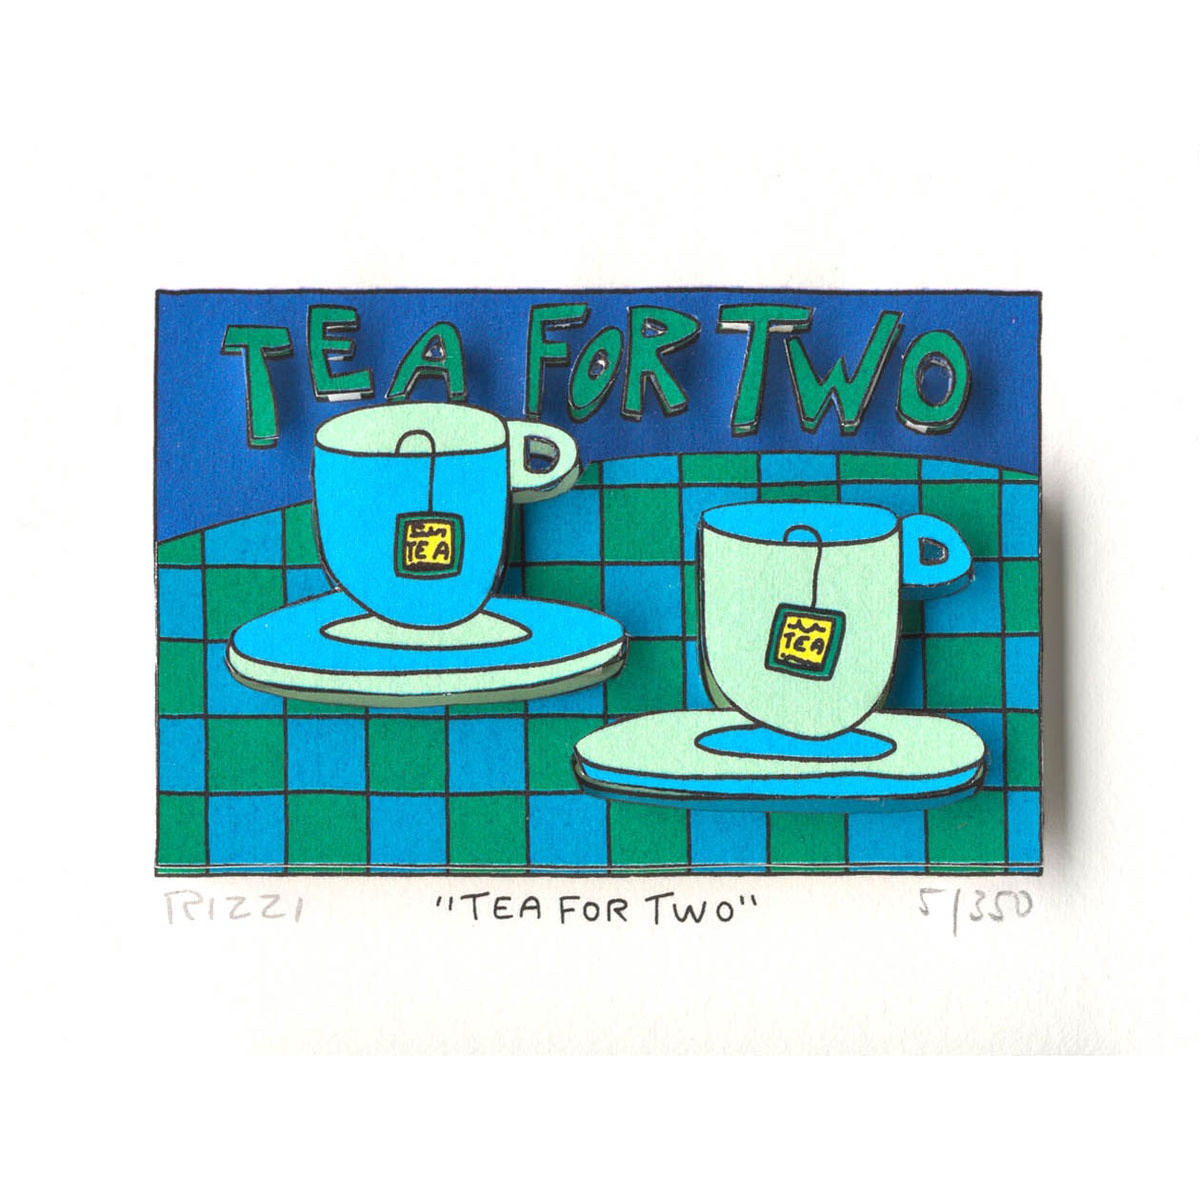 Tea for two von James Rizzi